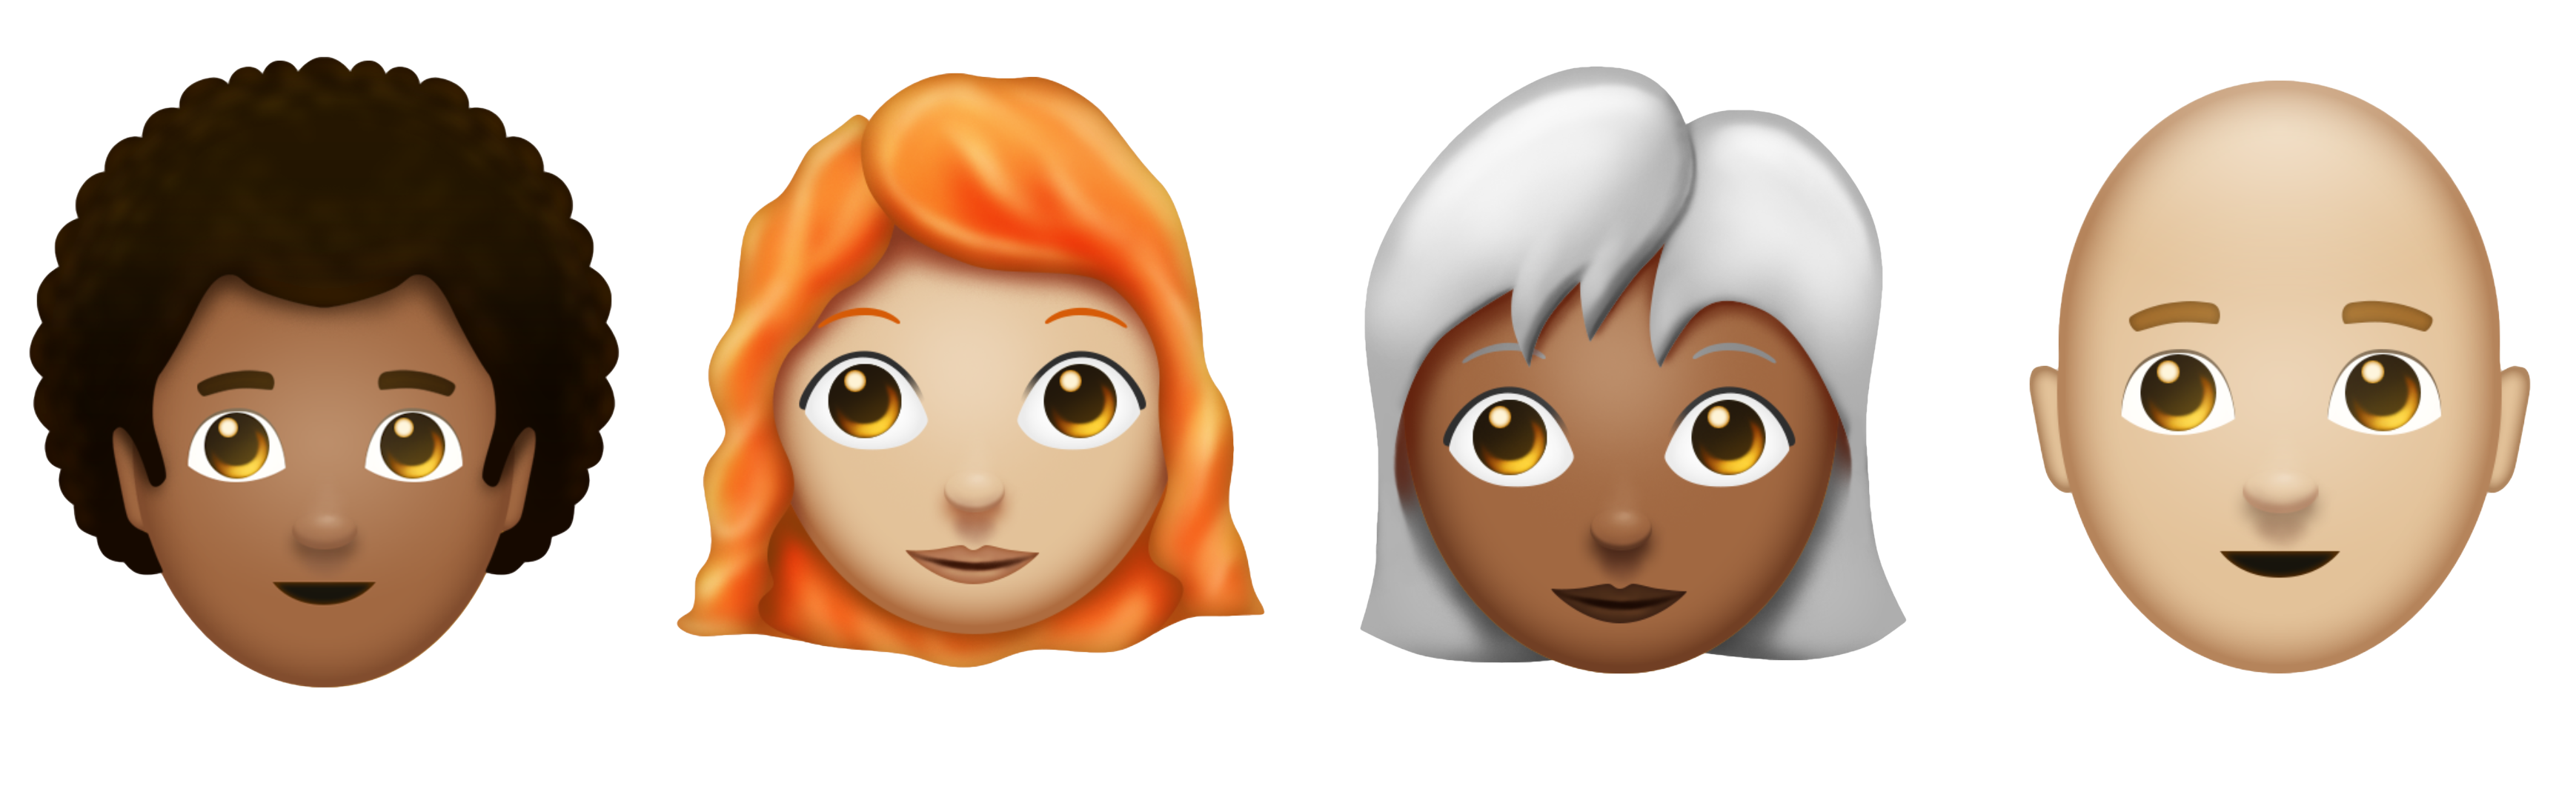 Redhead, afro, and bald emojis